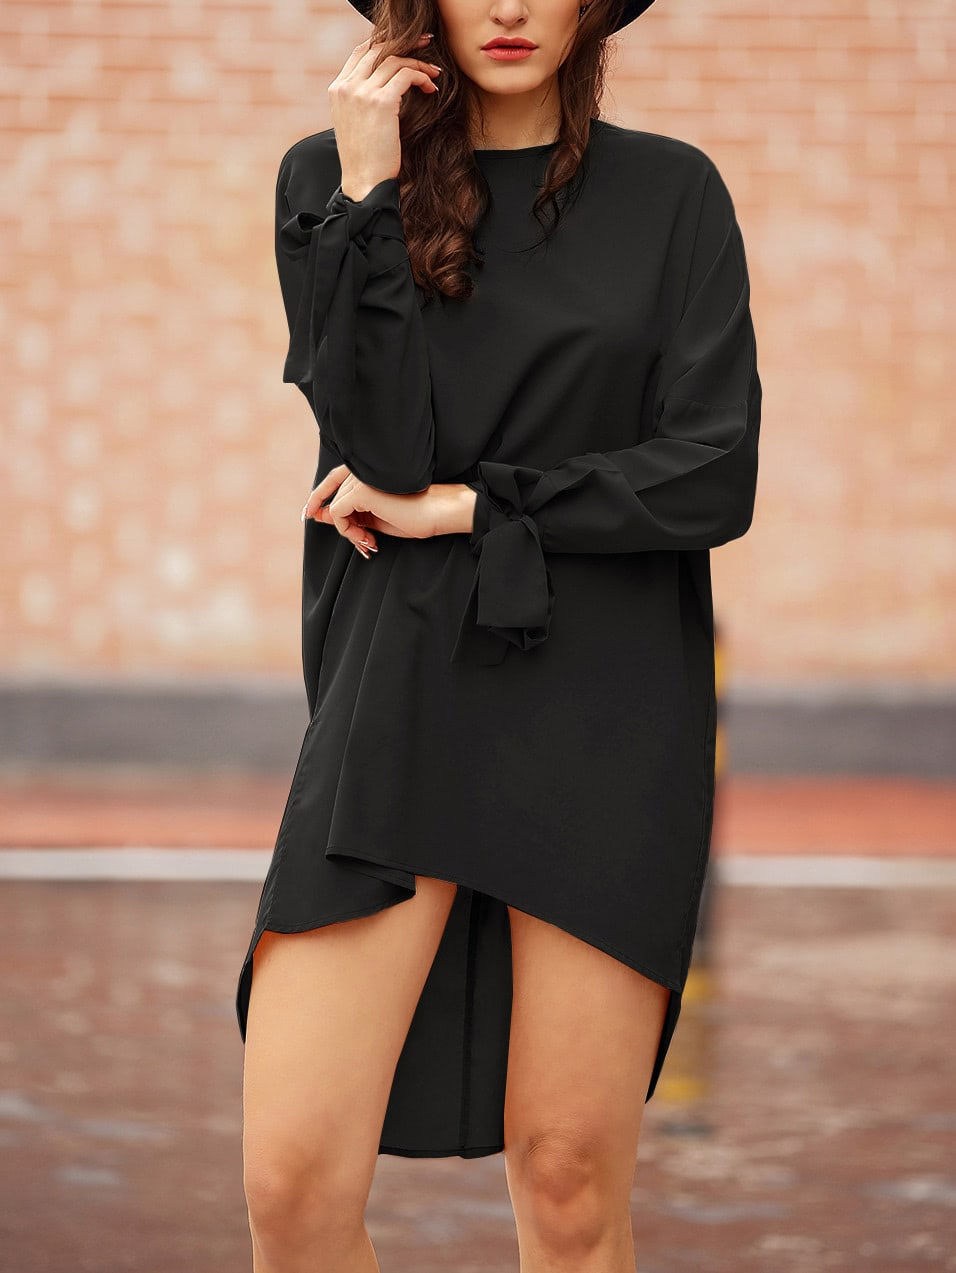 Black Knotted Sleeve High Low DressBlack Knotted Sleeve High Low Dress<br><br>color: Black<br>size: XS